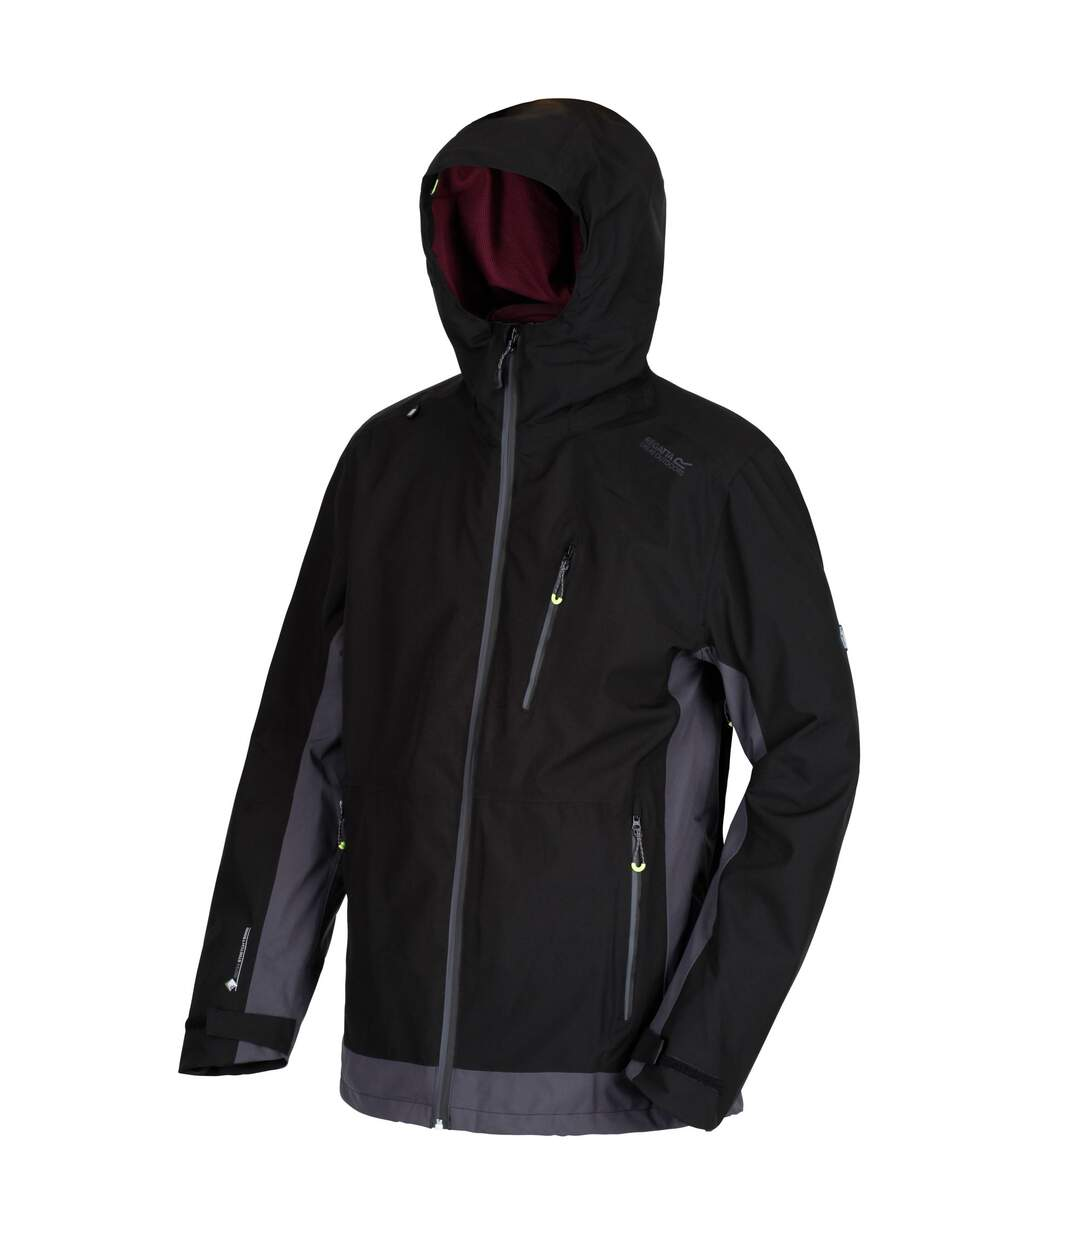 Regatta Mens Wentwood III Jacket (Black/Seal Grey) - UTRG3871